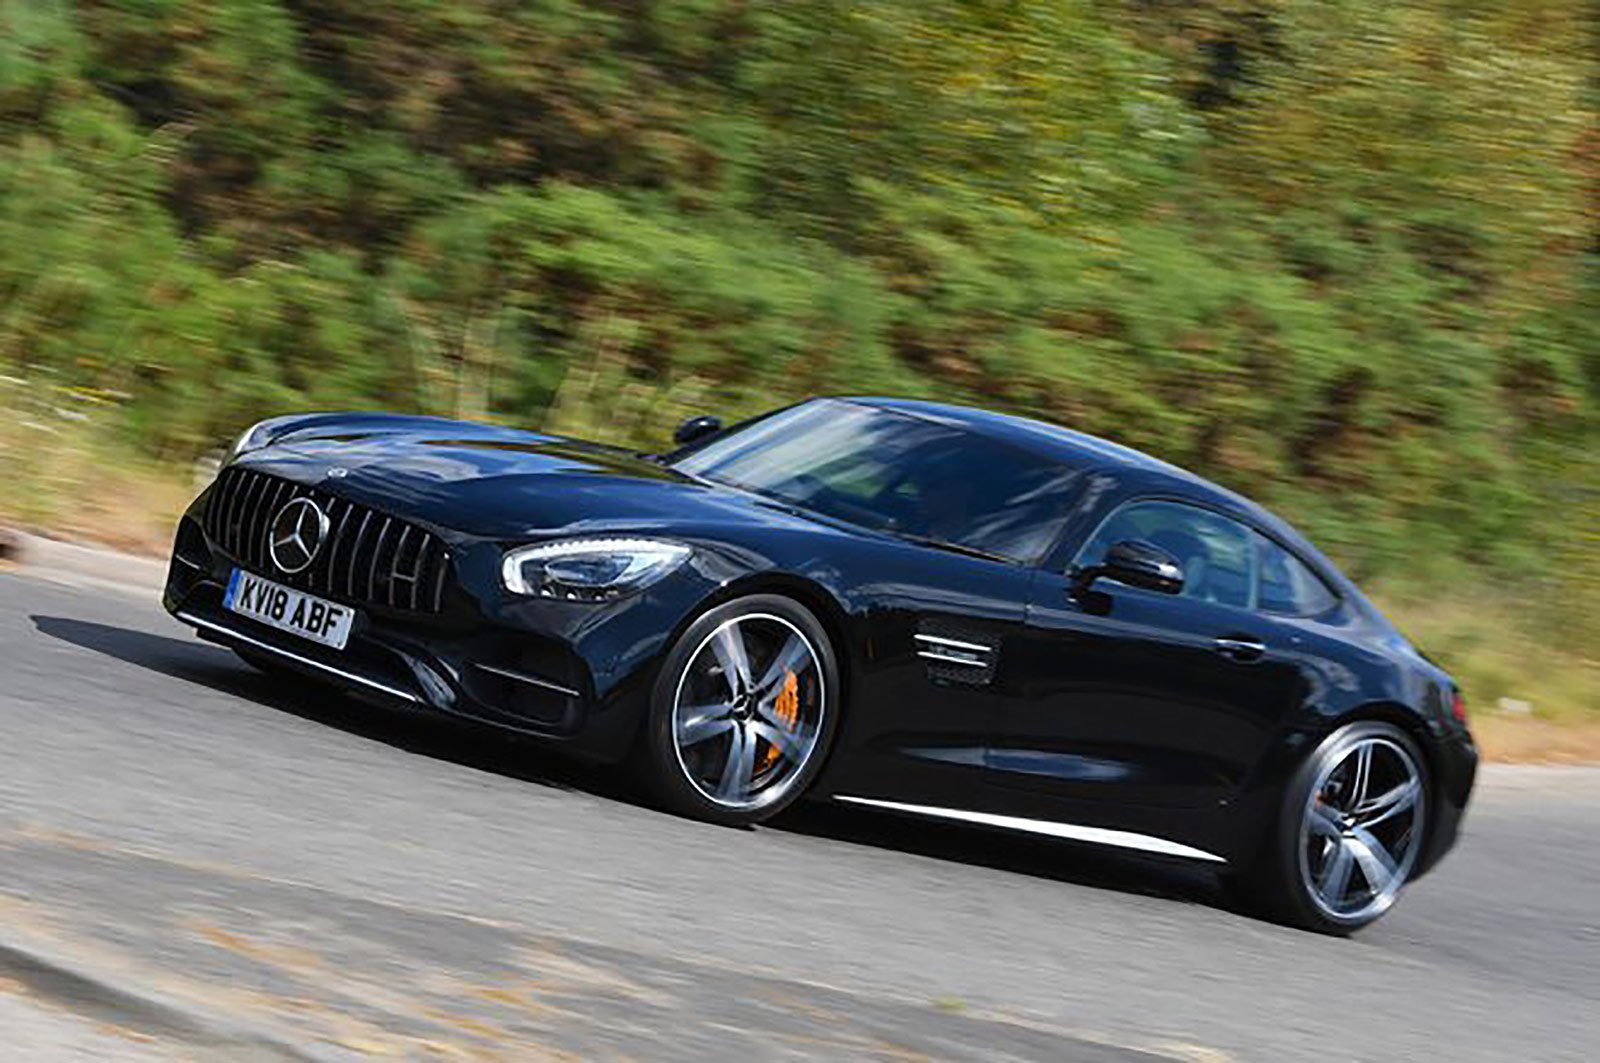 Mercedes-AMG GT coupé front and side